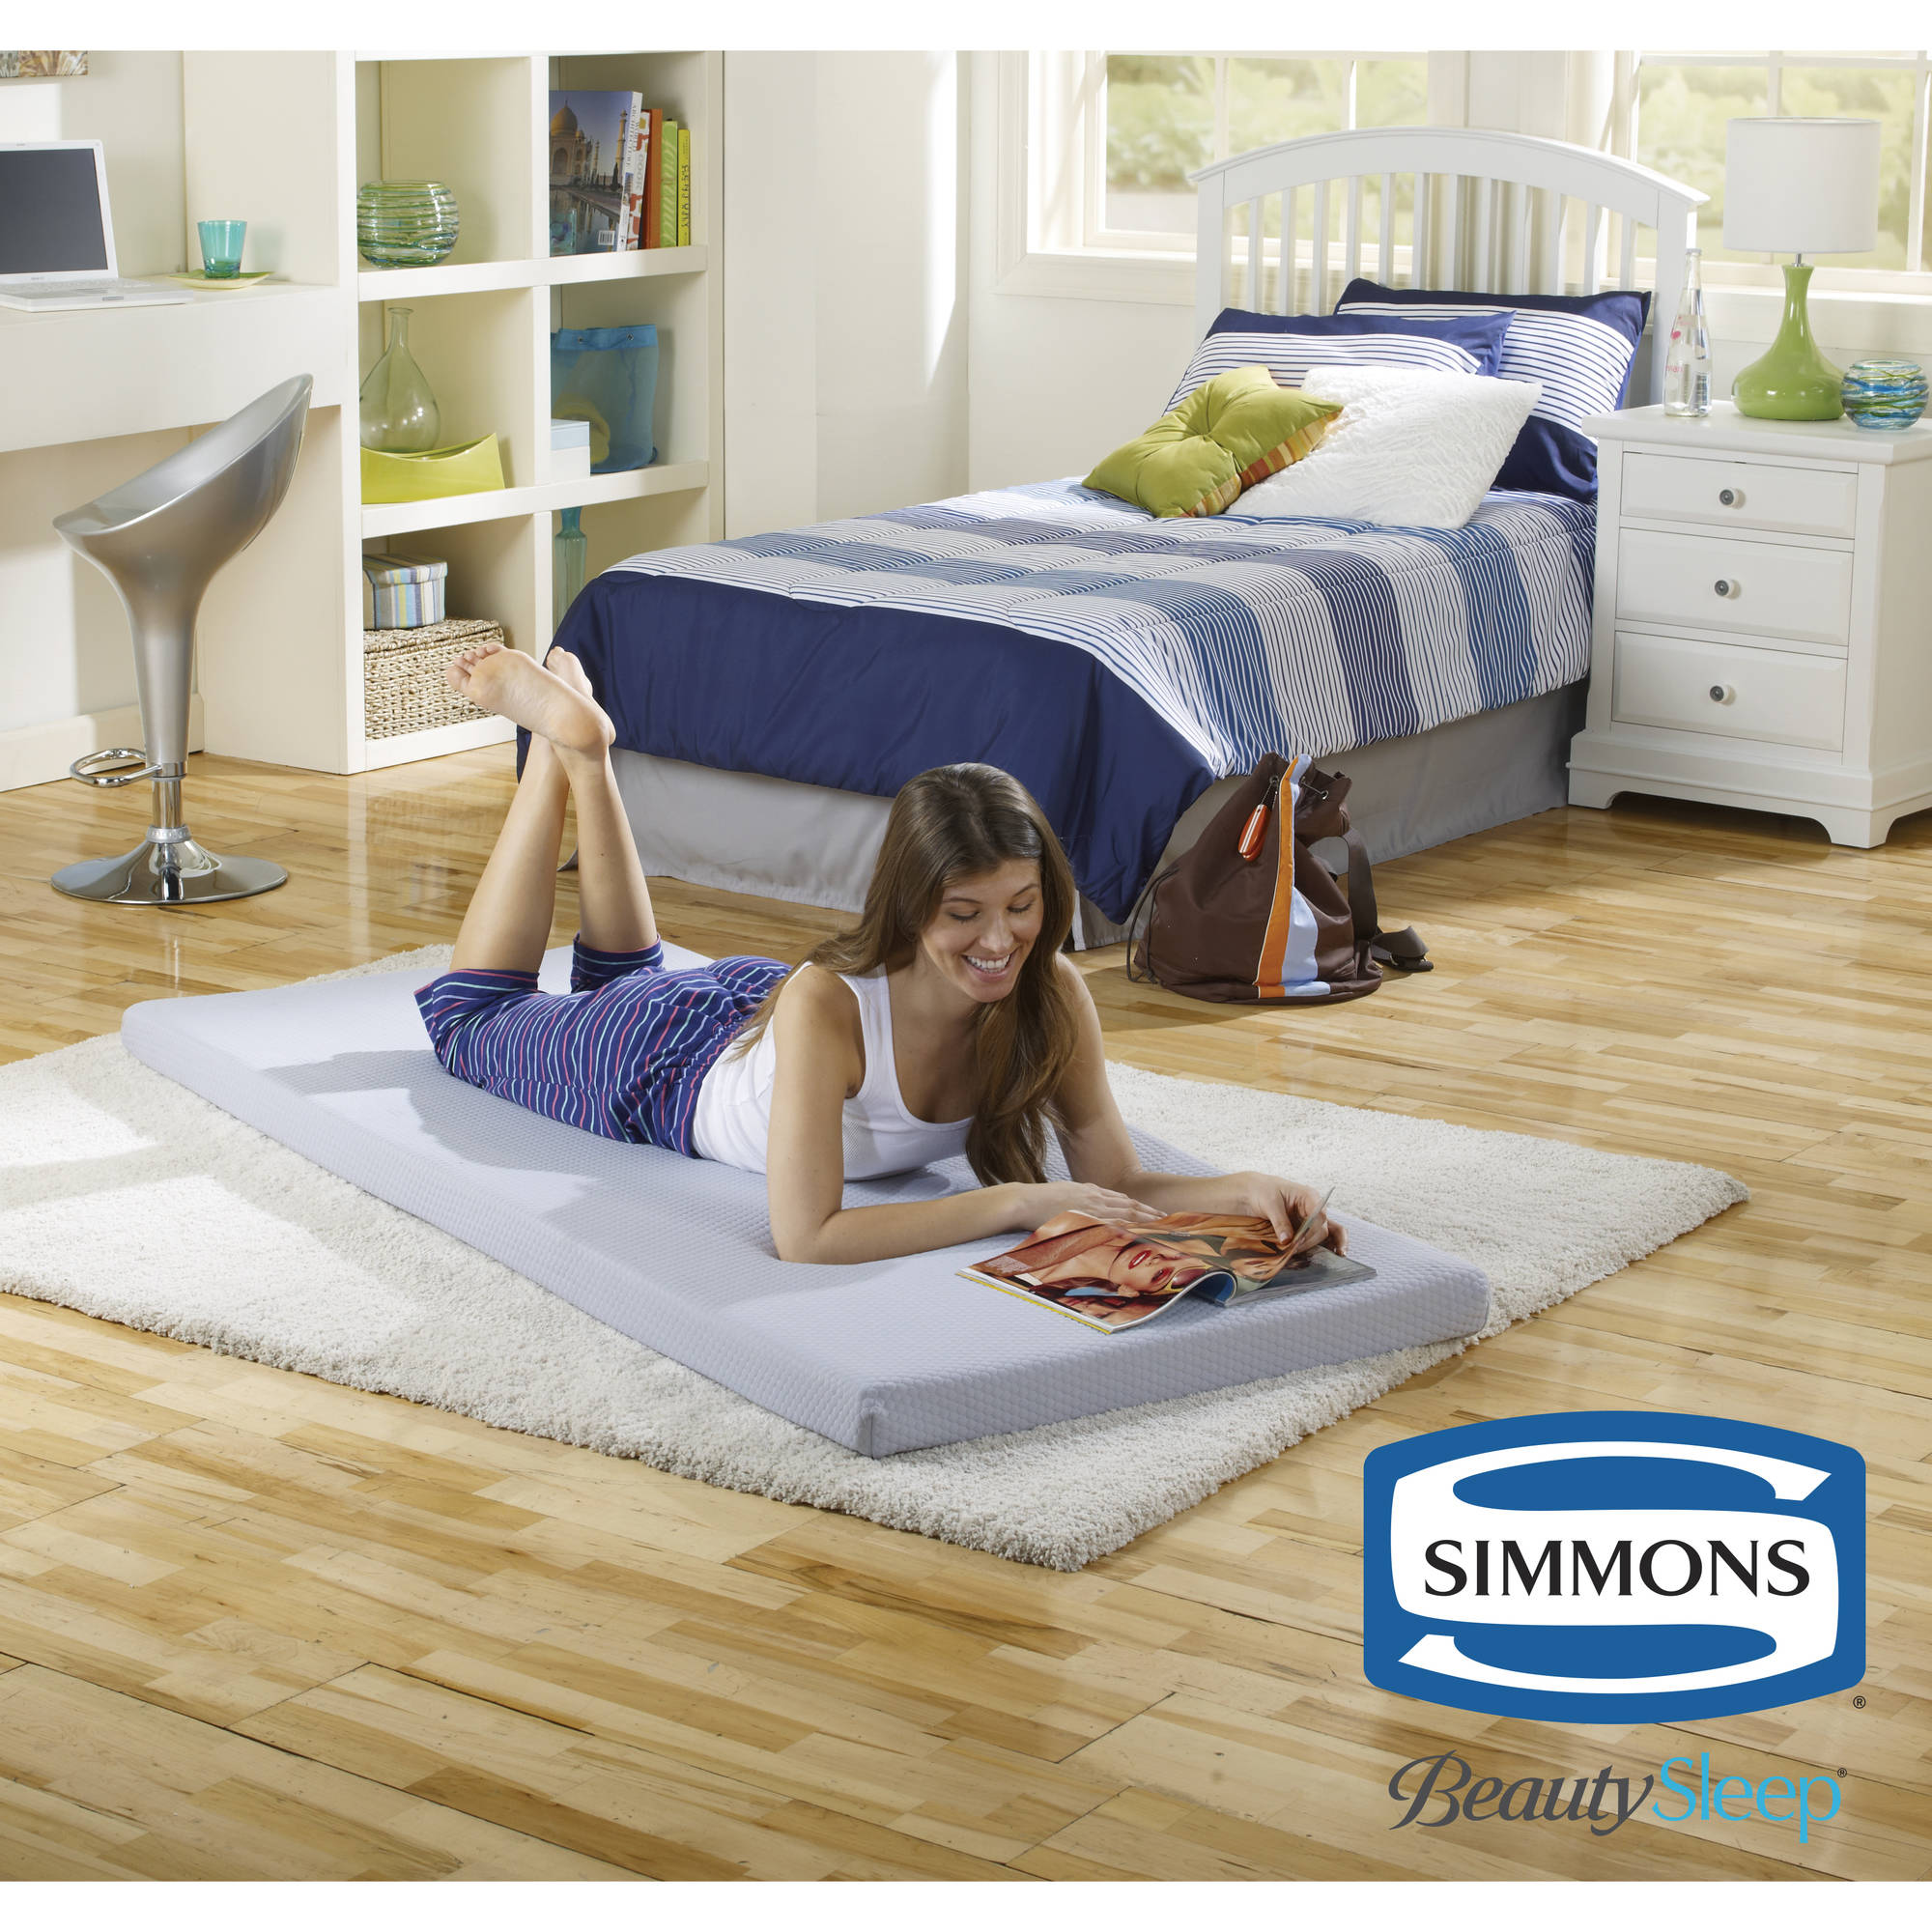 Simmons Beautysleep Siesta Twin Memory Foam Guest Roll-Up Extra Portable Mattress Bed